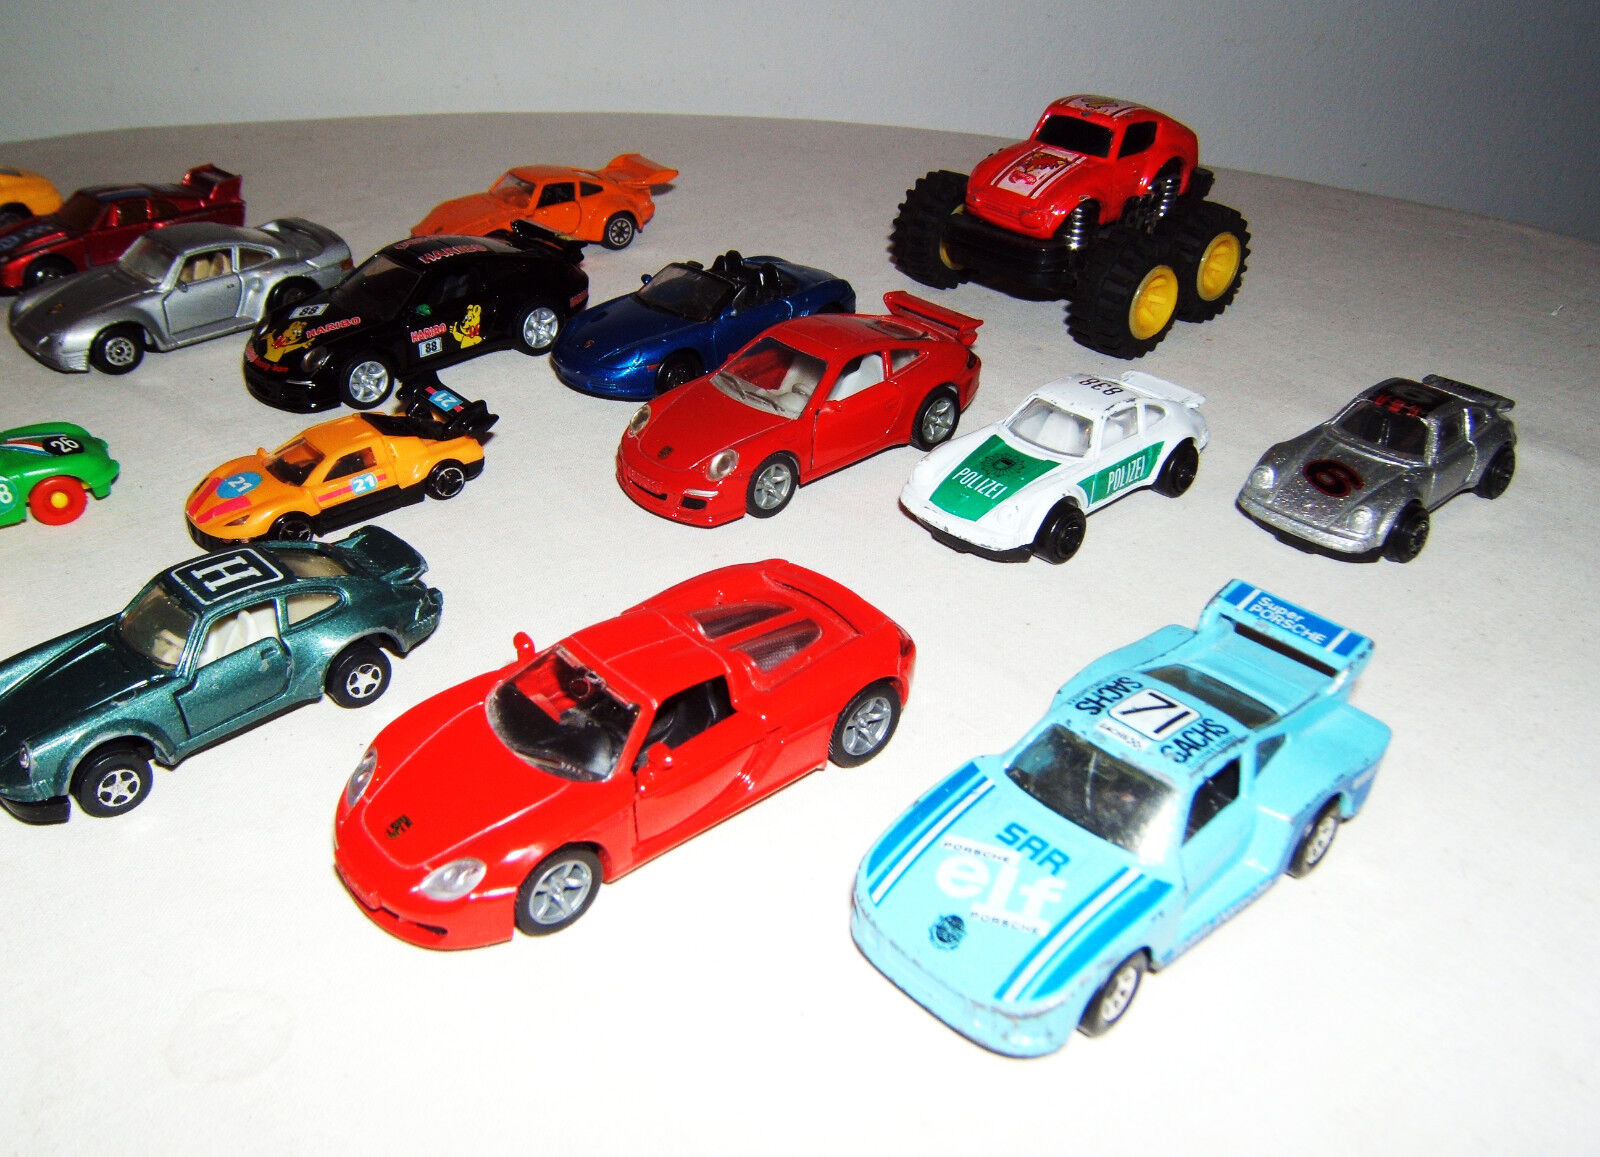 Liasse, Porsche Collection, 20 unités, Hot Wheels, MATCHBOX, MPG, SIKU, Welly, etc